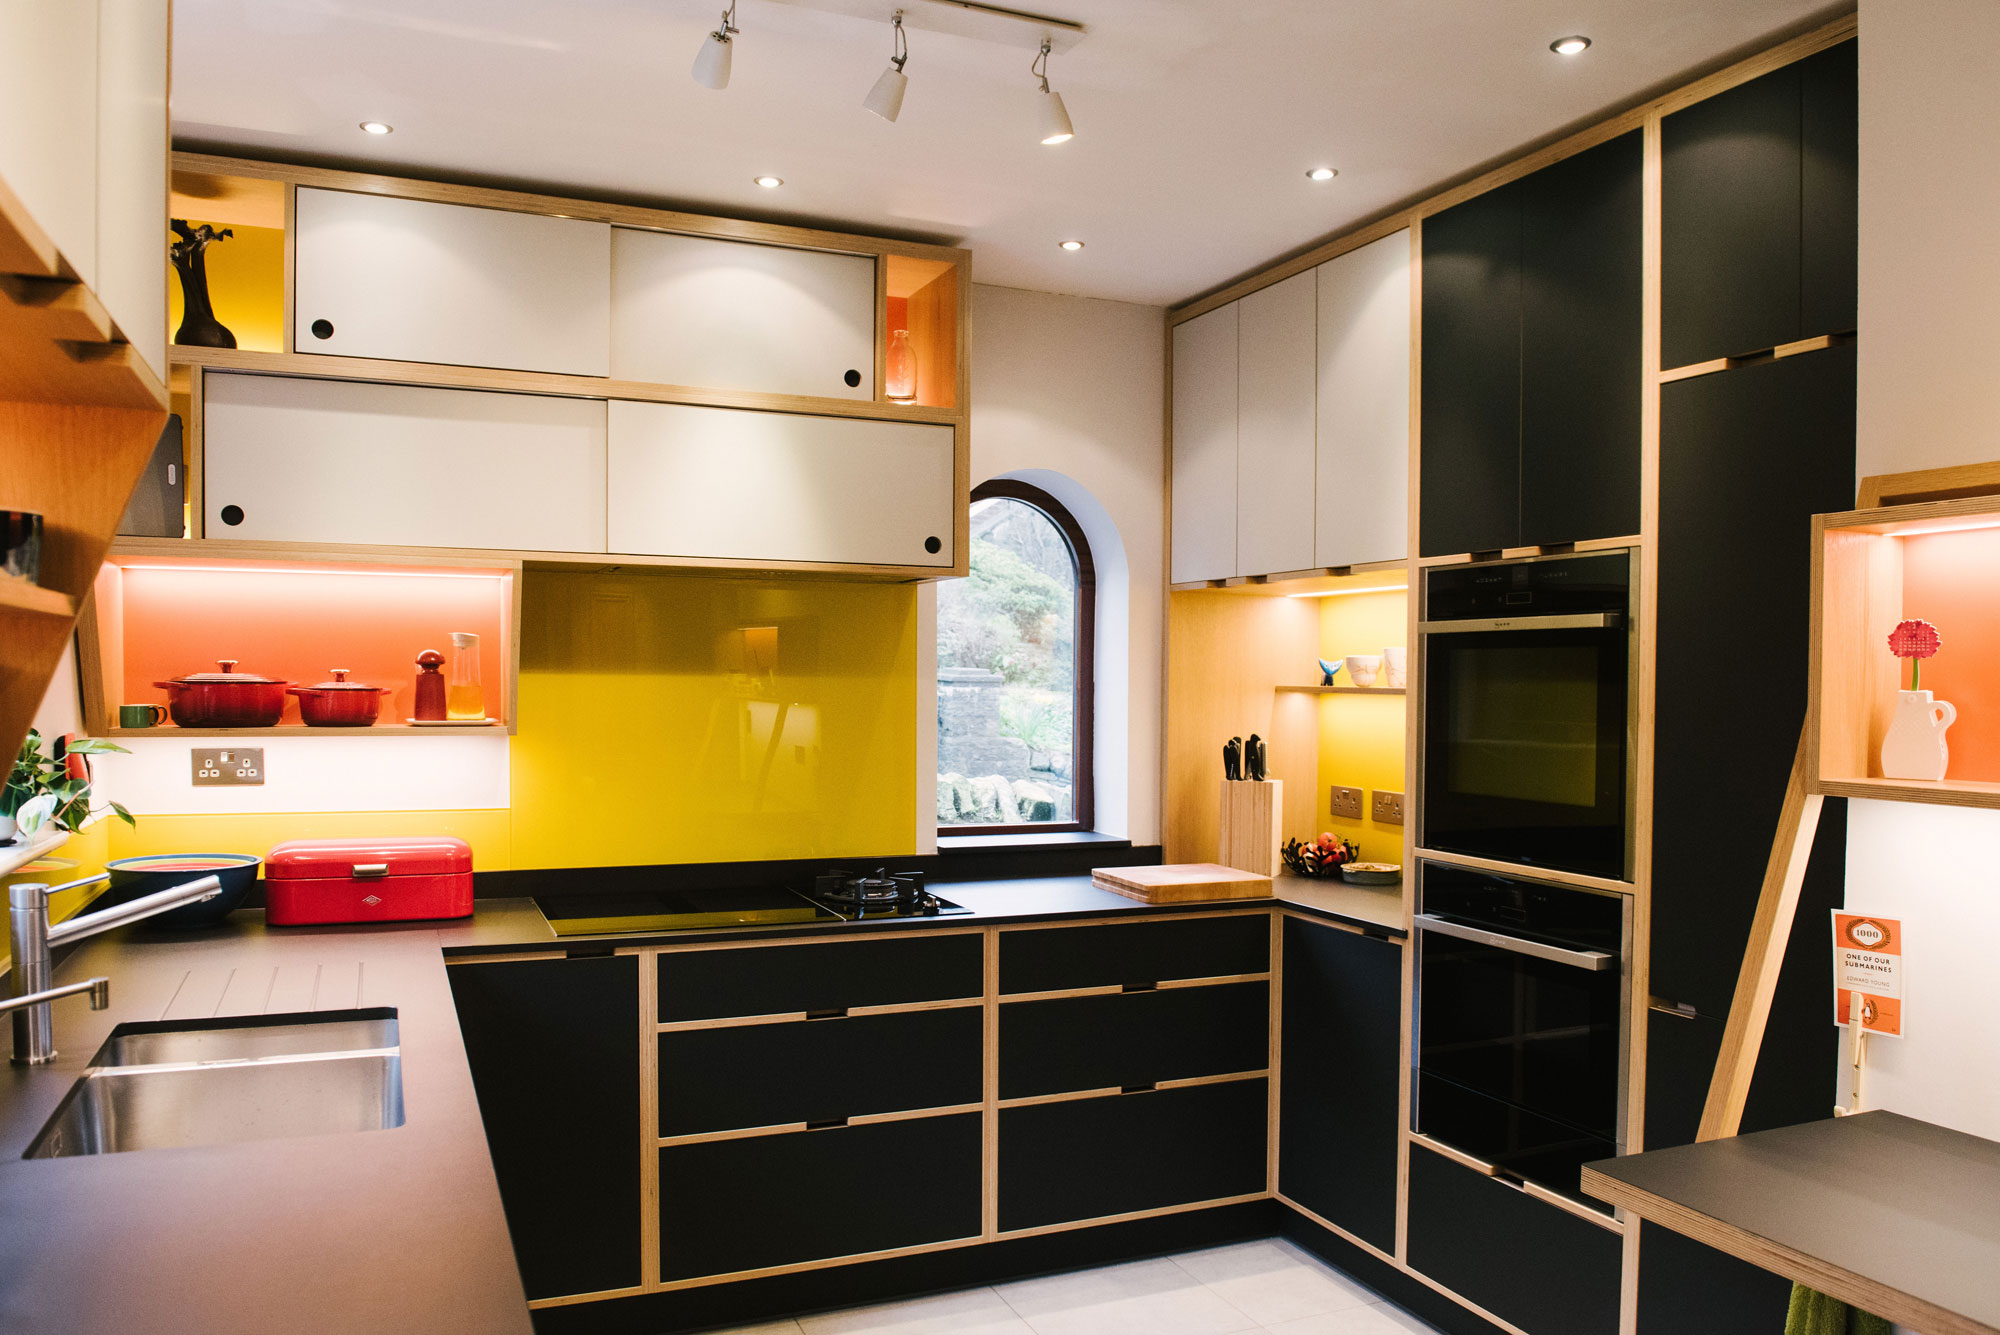 Cooking Area of Black Plywood Kitchen with Yellow Splashback